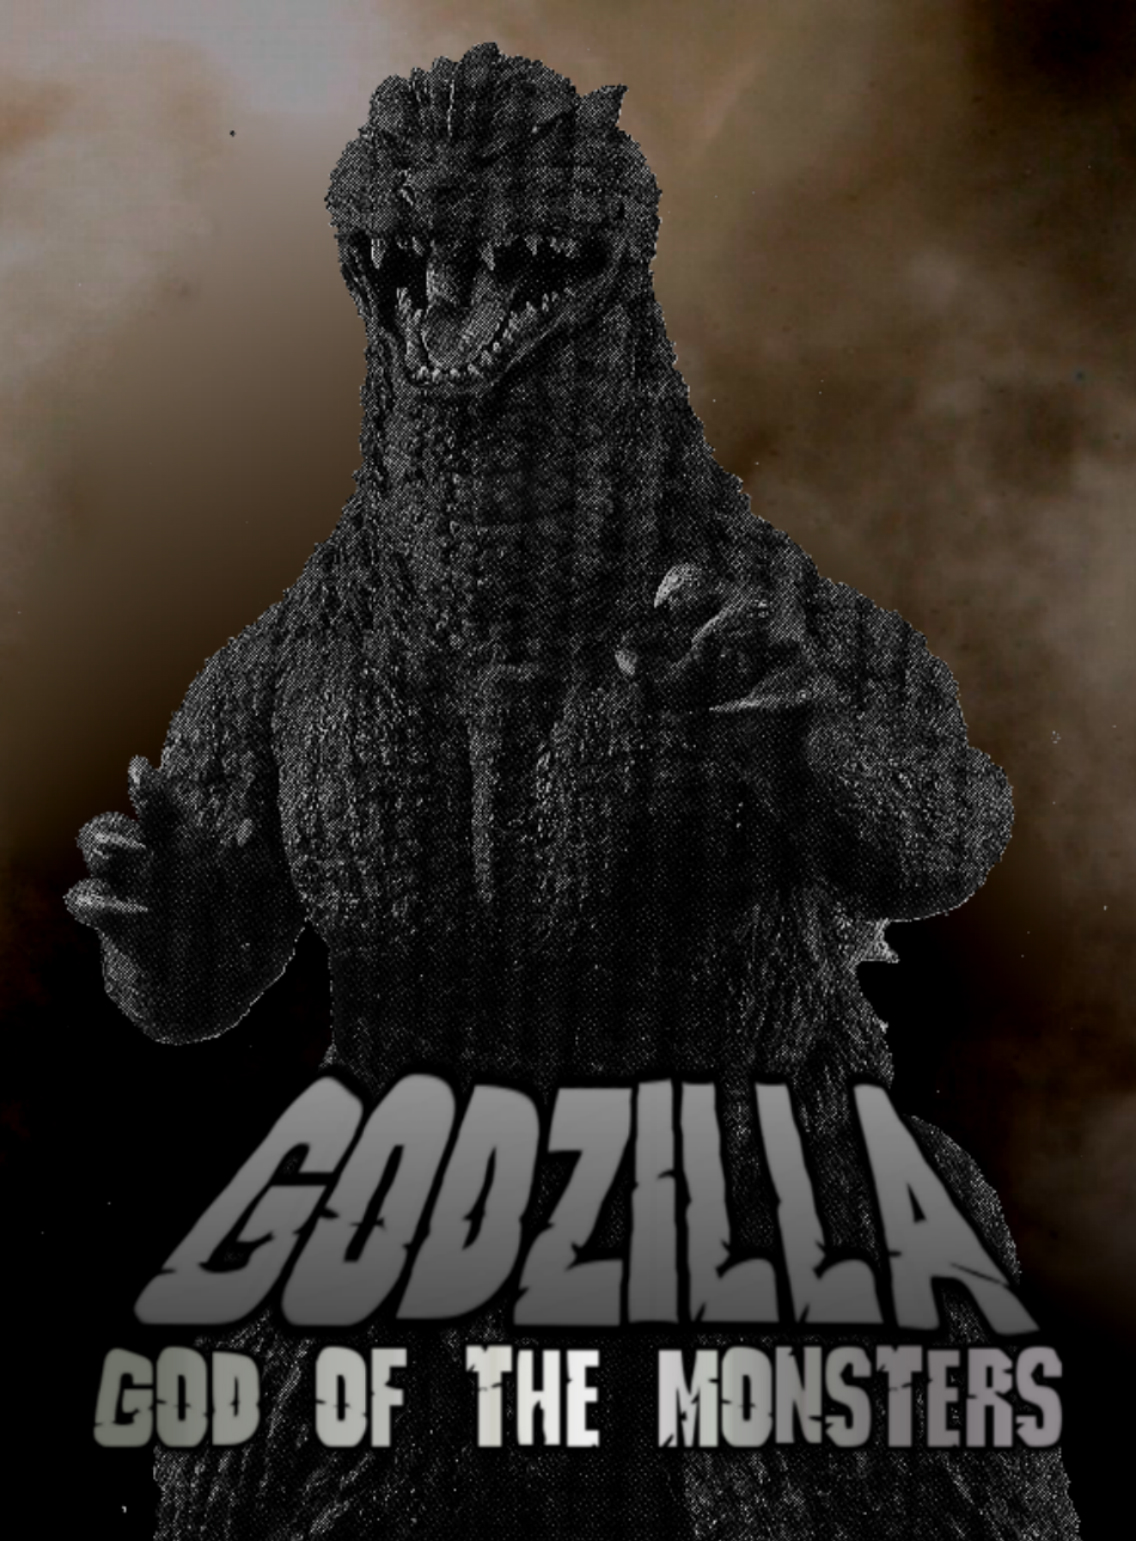 Godzilla: God of the Monsters